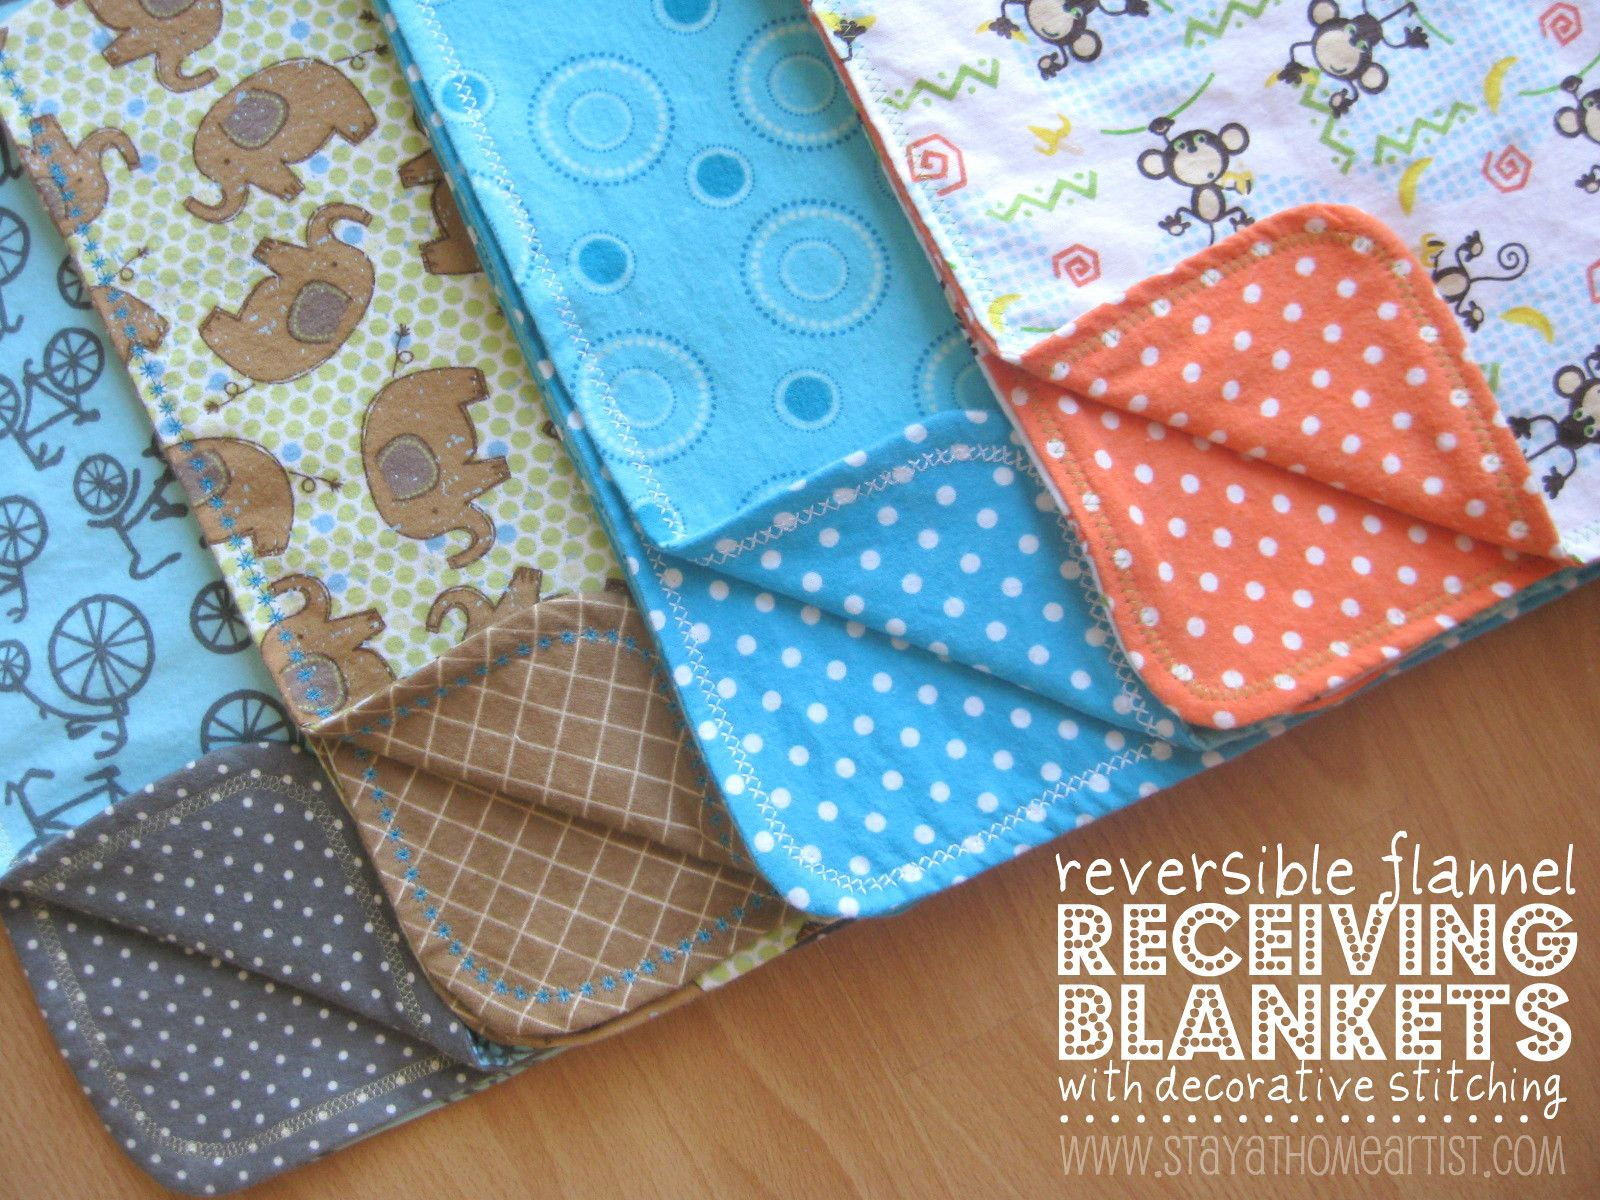 Easy sewing projects for beginners flannels blanket and babies sew baby how to make reversible flannel receiving blankets im going to do this because jeuxipadfo Gallery